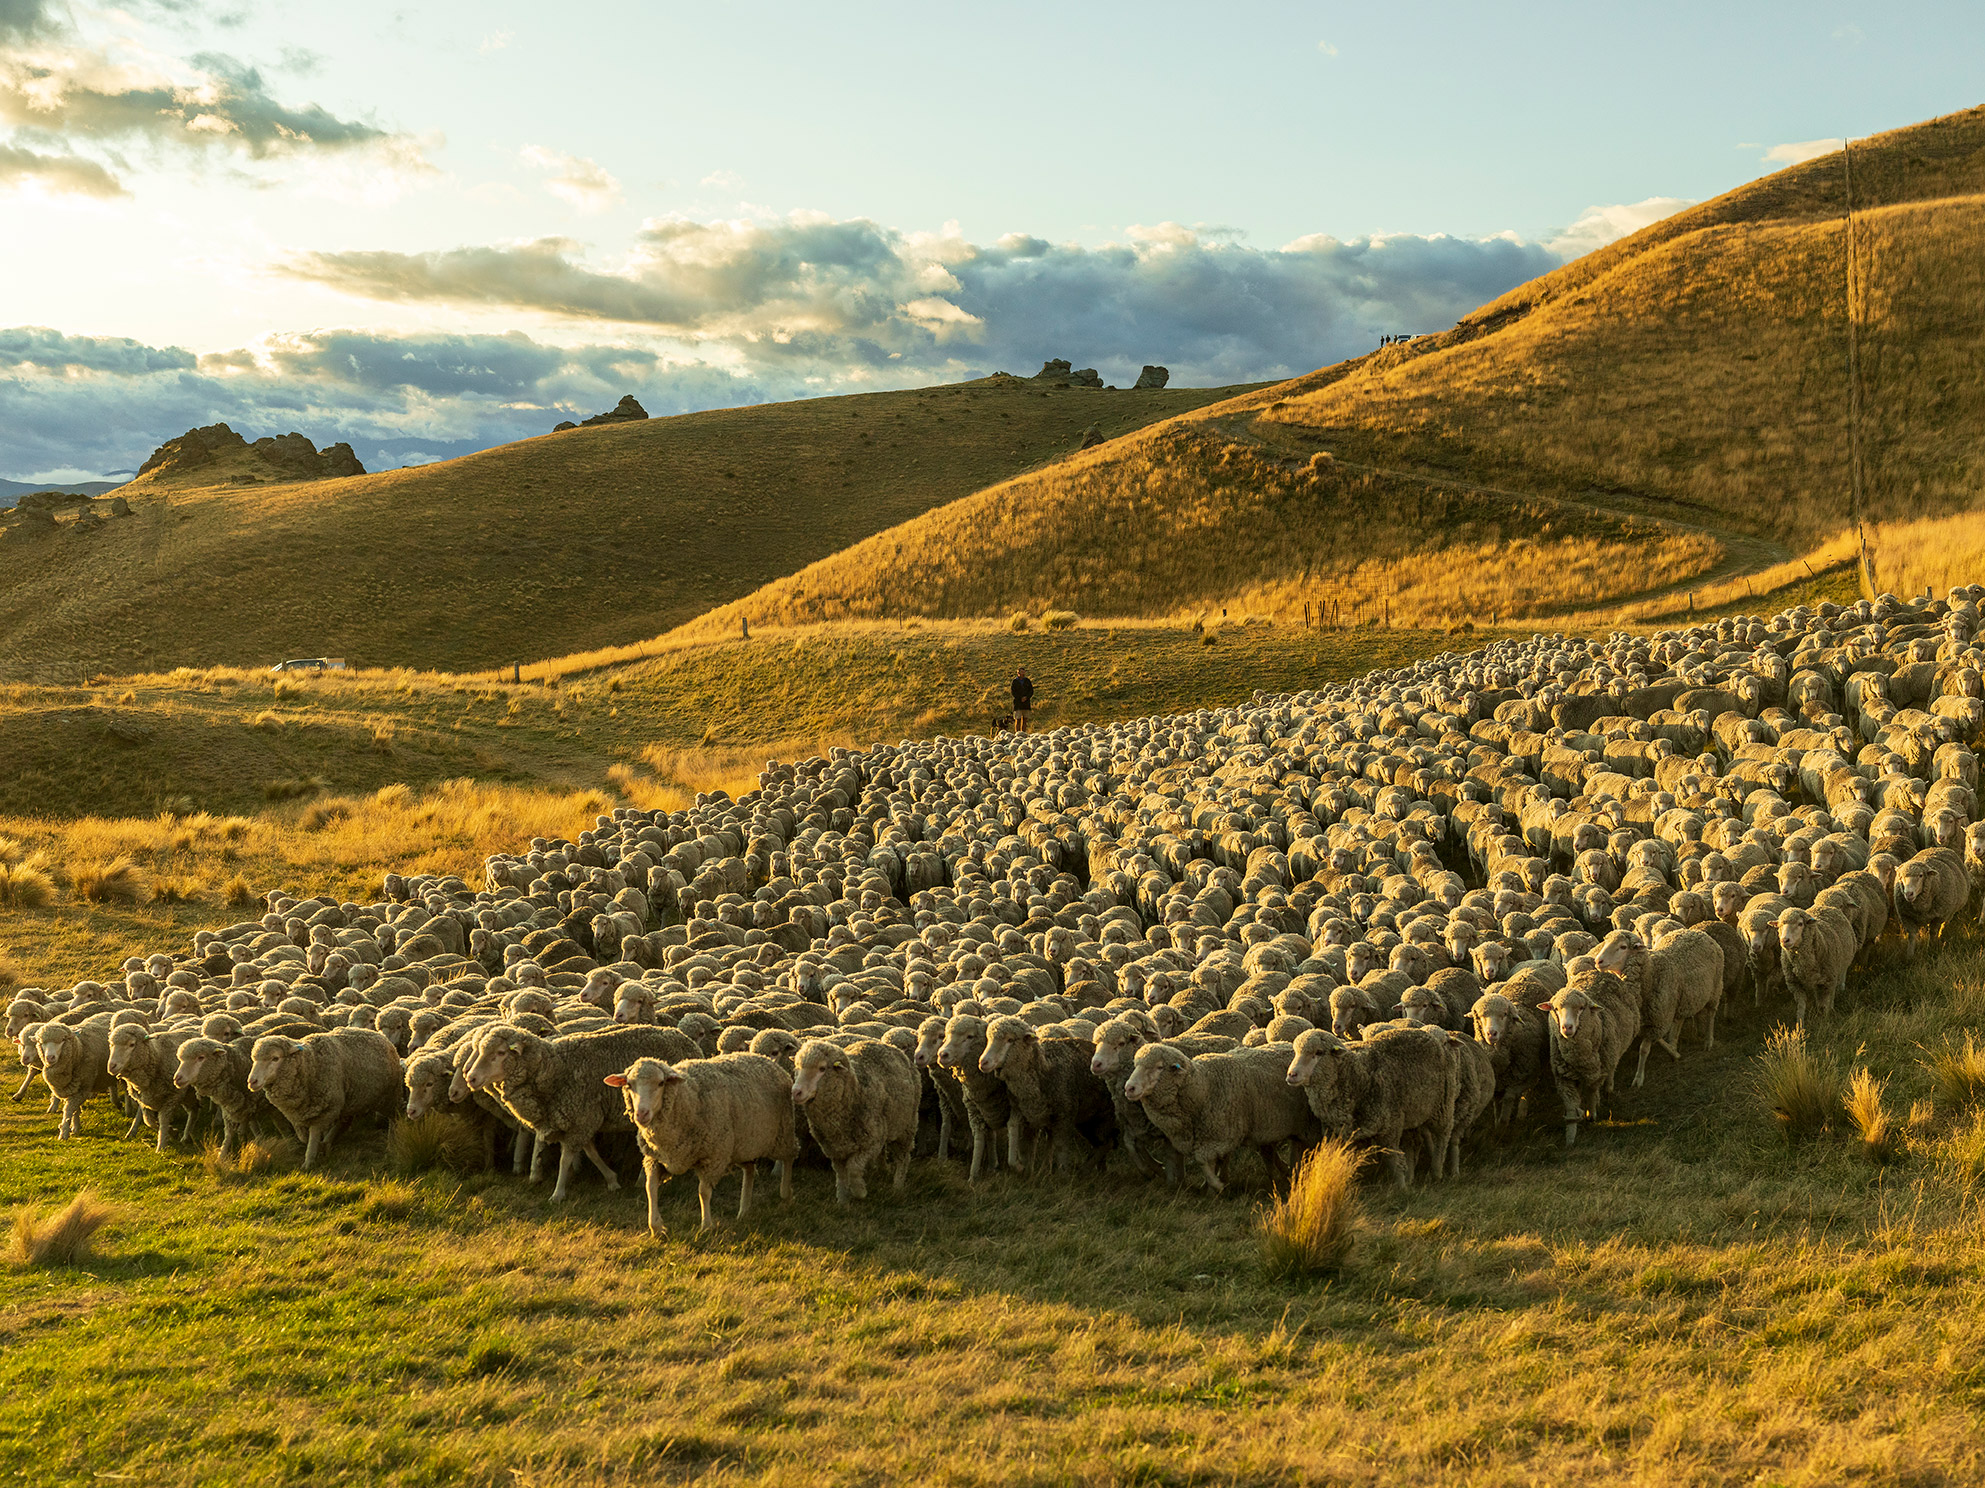 A photo of a herd of Sheep.